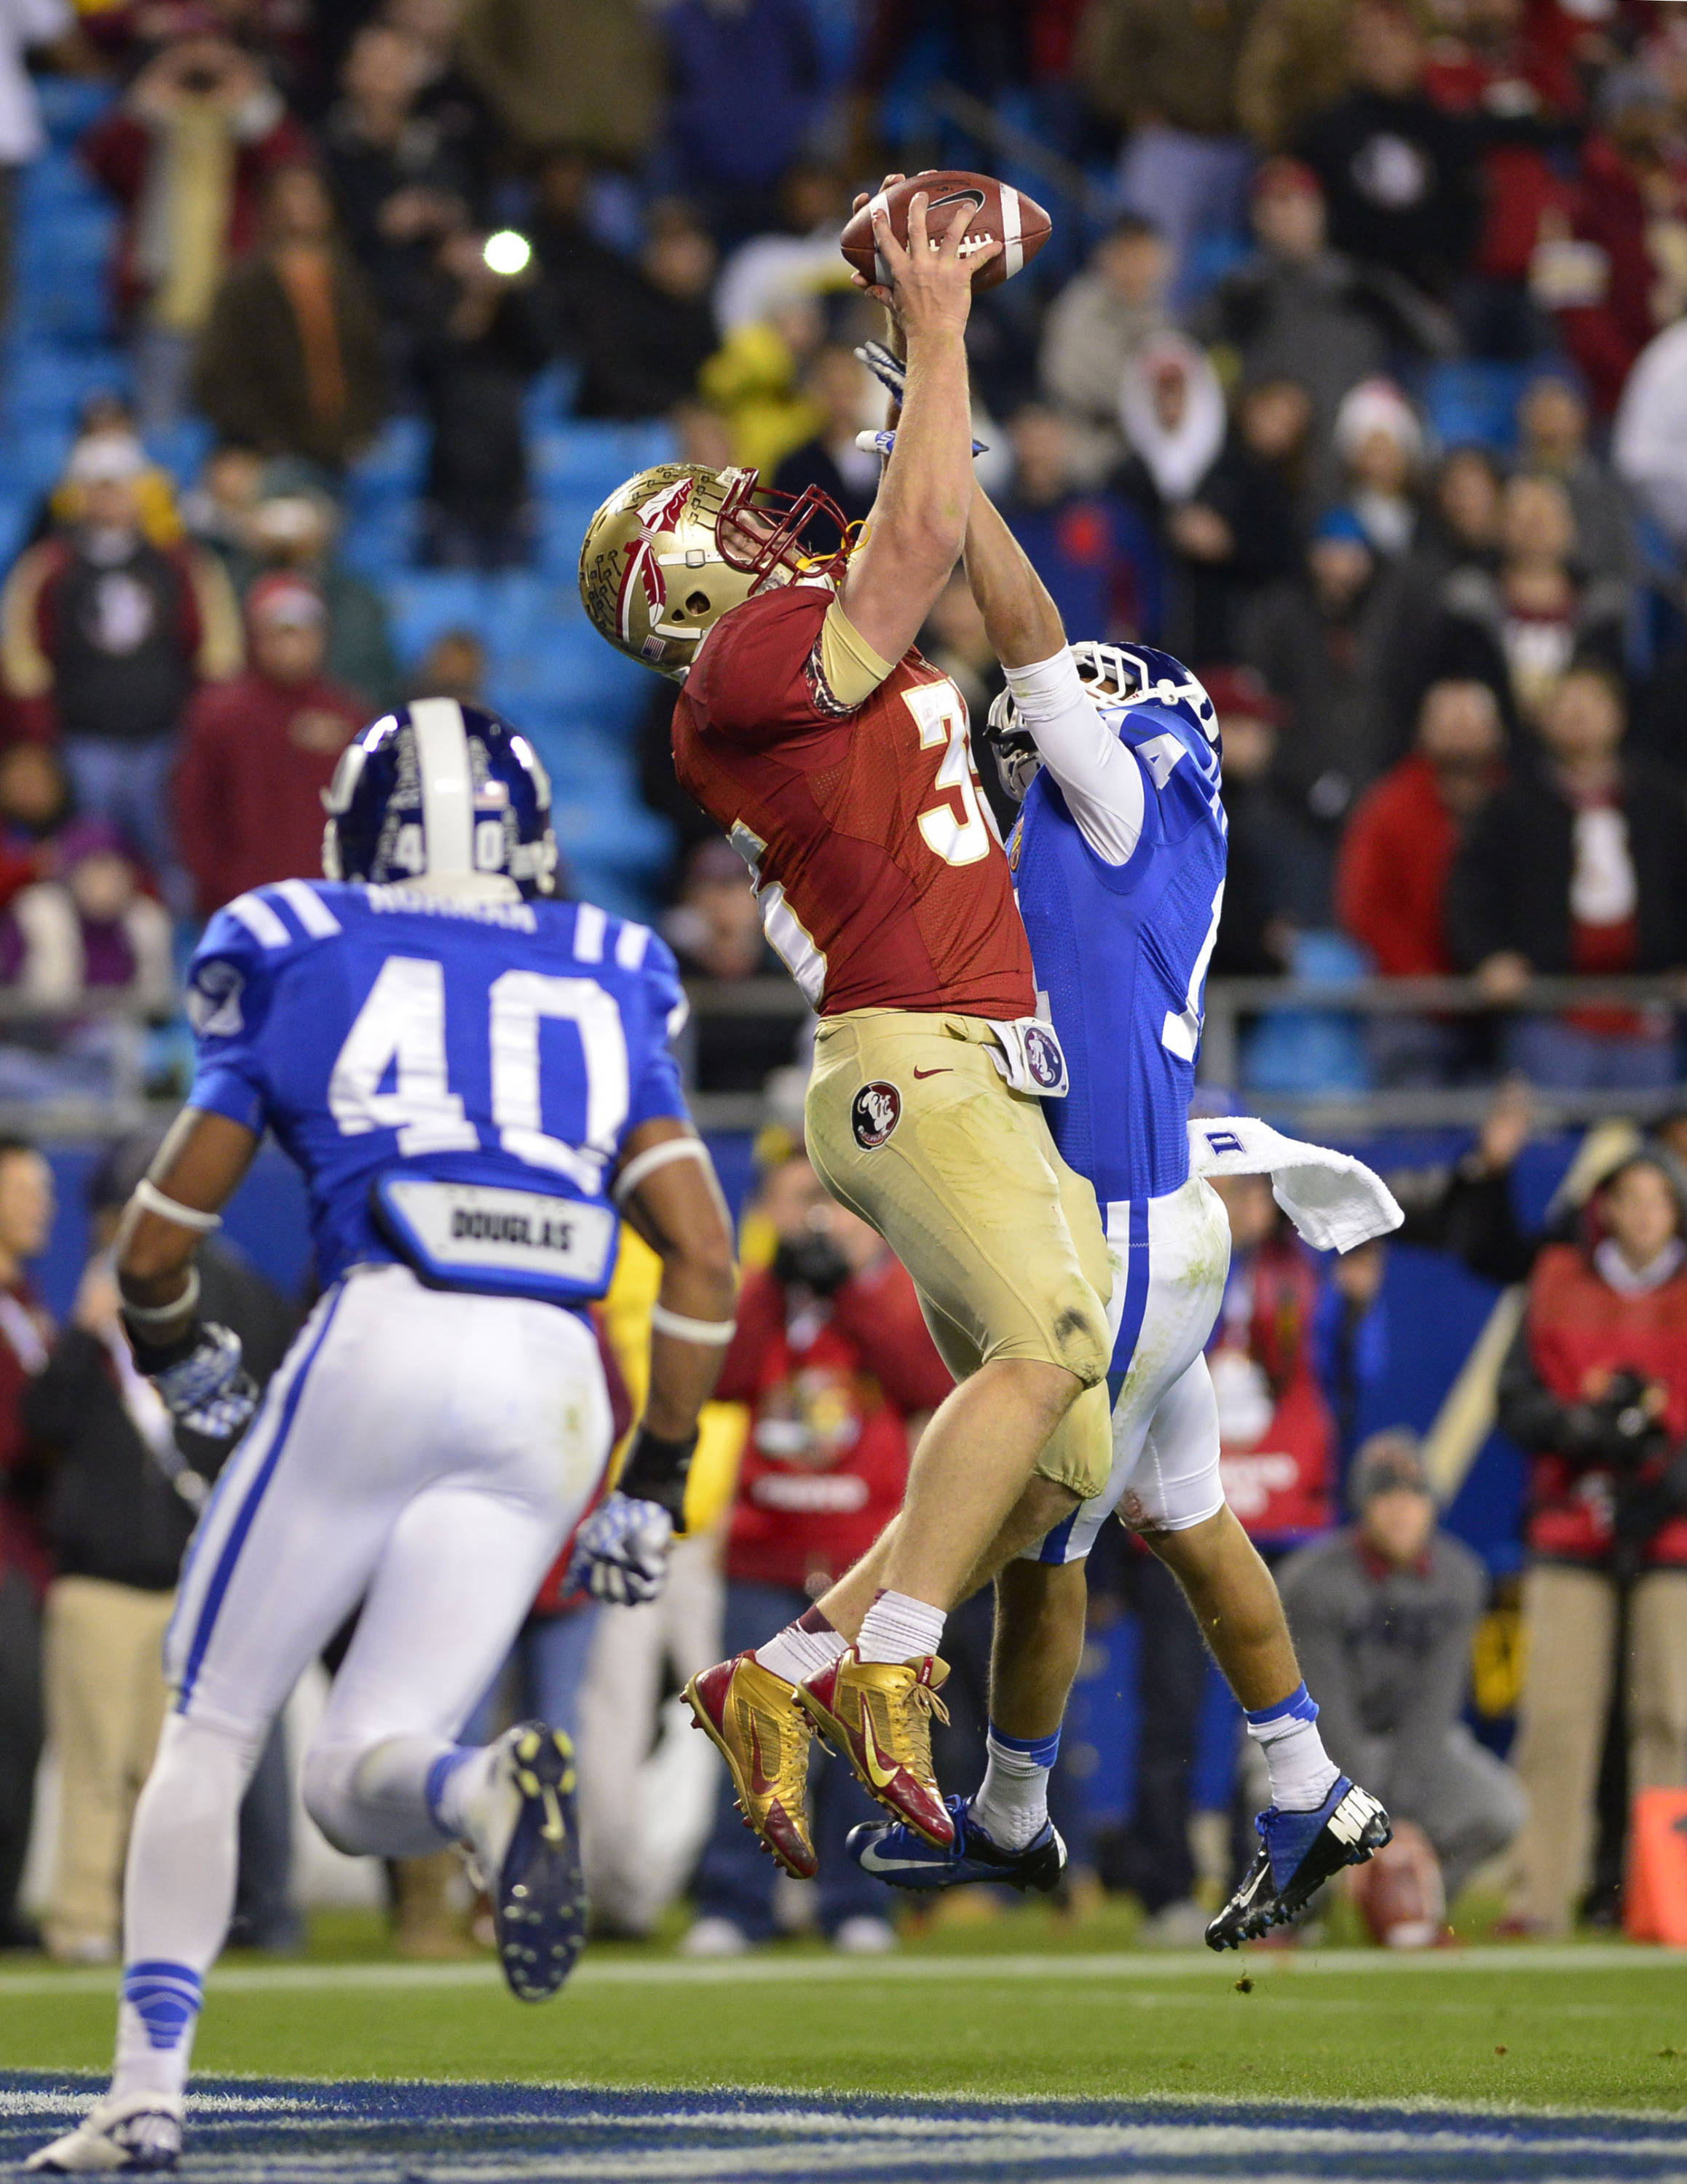 Dec 7, 2013; Charlotte, NC, USA; Florida State Seminoles tight end Nick O'Leary (35) tries to make a catch in the end zone in the fourth quarter as Duke Blue Devils safety Dwayne Norman (40) and cornerback Bryon Fields (14) defend. The Seminoles defeated the Blue Devils 45-7 at Bank of America Stadium. Mandatory Credit: Bob Donnan-USA TODAY Sports